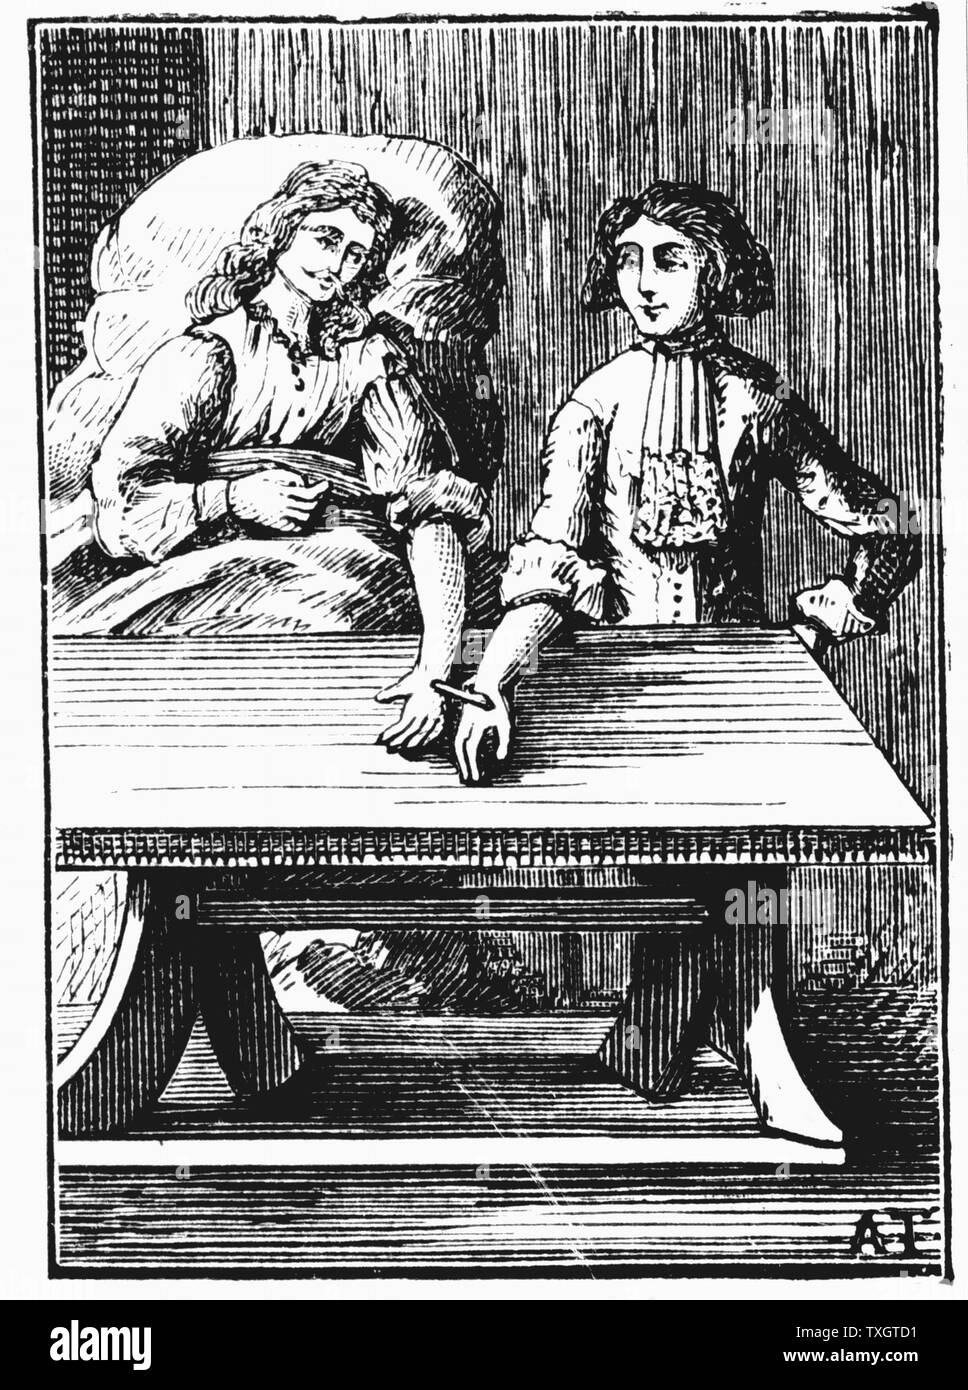 Direct person-to-person blood transfusion 1679 After engraving from George Abraham Mercklino 'Tractatio med. Curiosa de murto et occasu transfusionis sanguinis',  Nuremberg - Stock Image